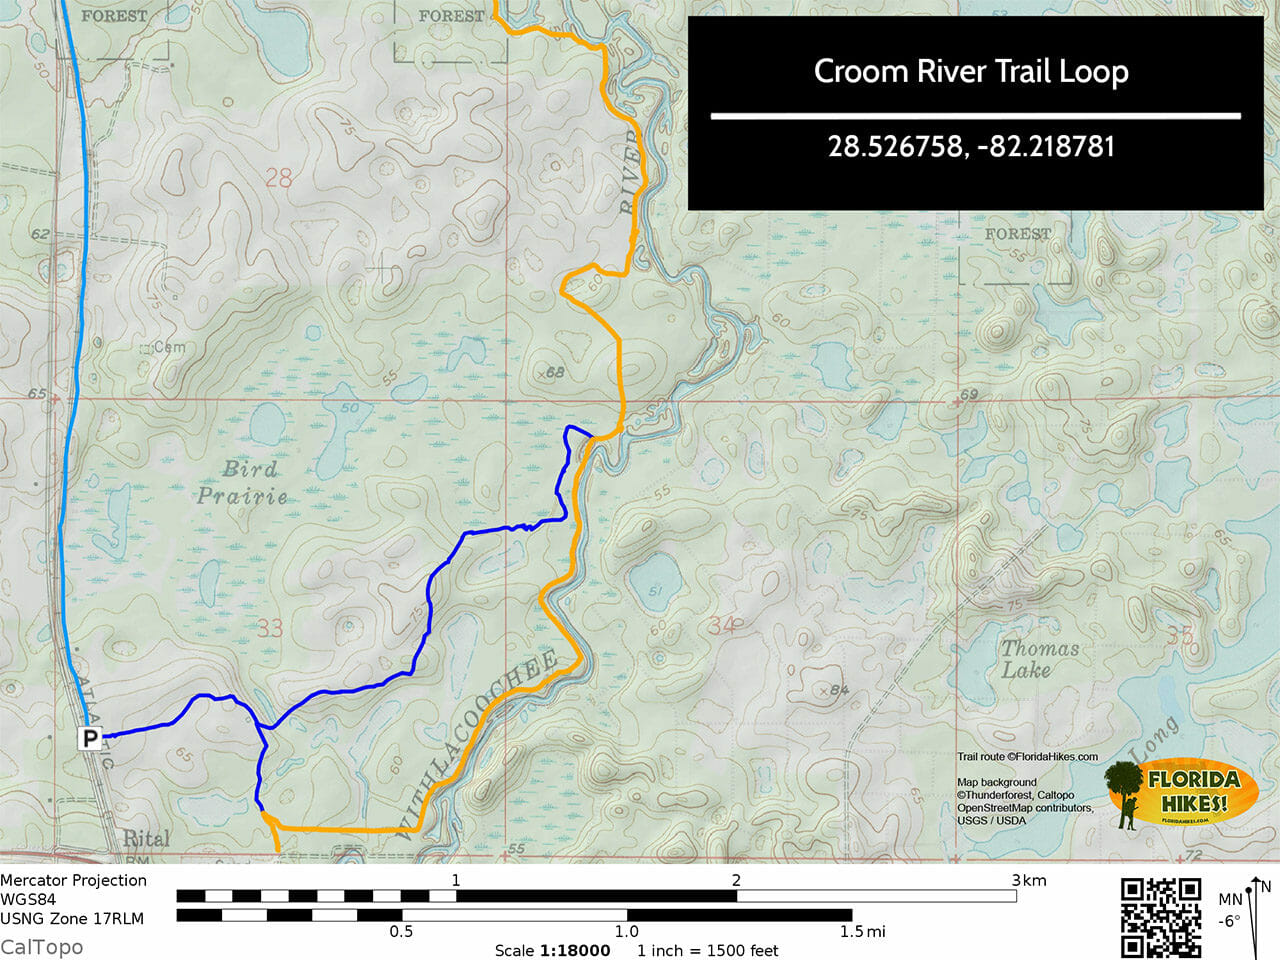 Croom River Trail Loop Map